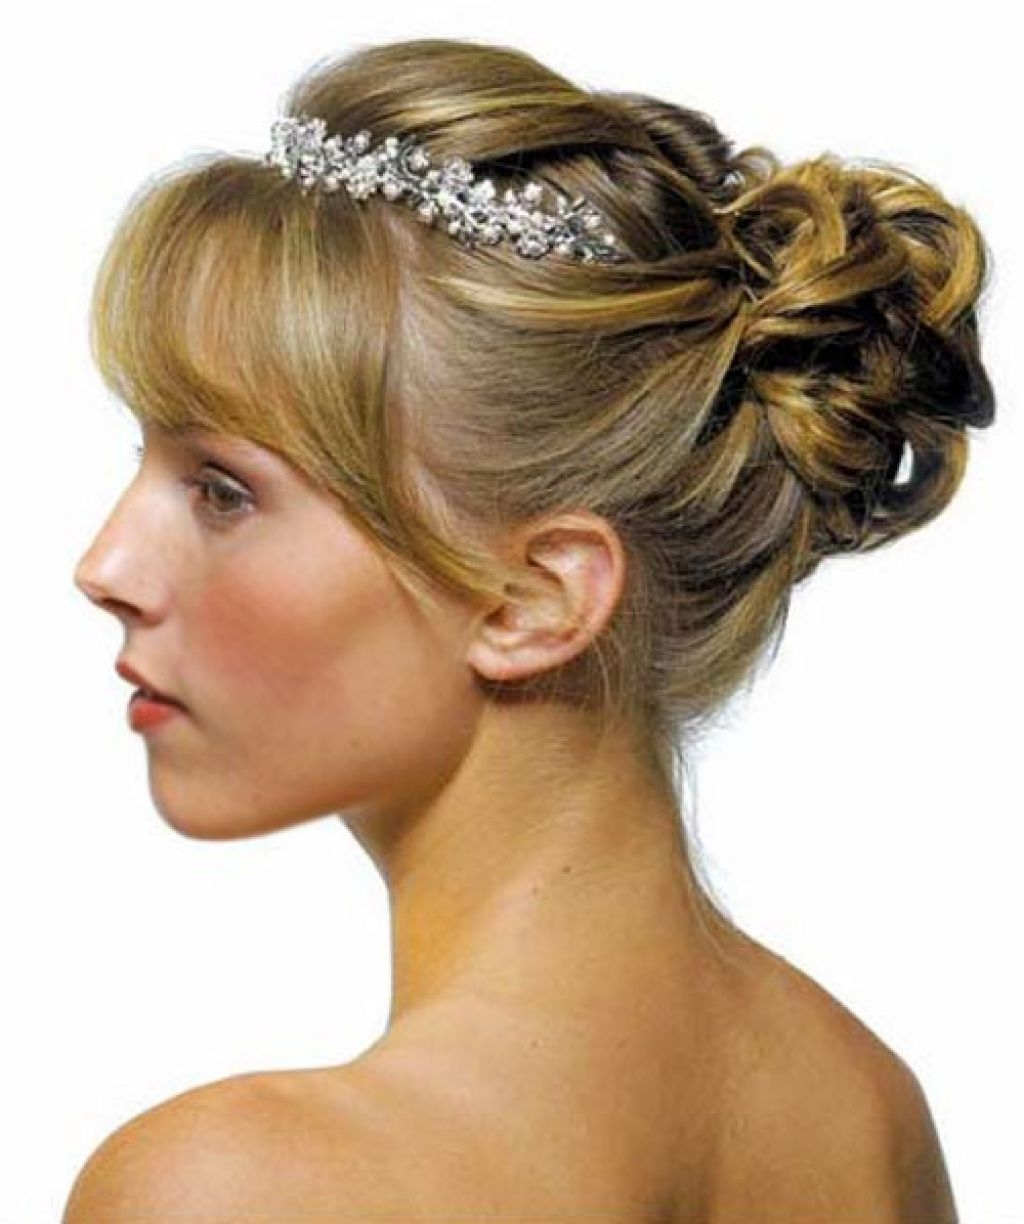 2018 Wedding Hairstyles For Medium Length Hair With Side Ponytail For Wedding Hairstyles Ideas: Side Ponytail Curly Low Updo Fancy Wedding (View 1 of 15)